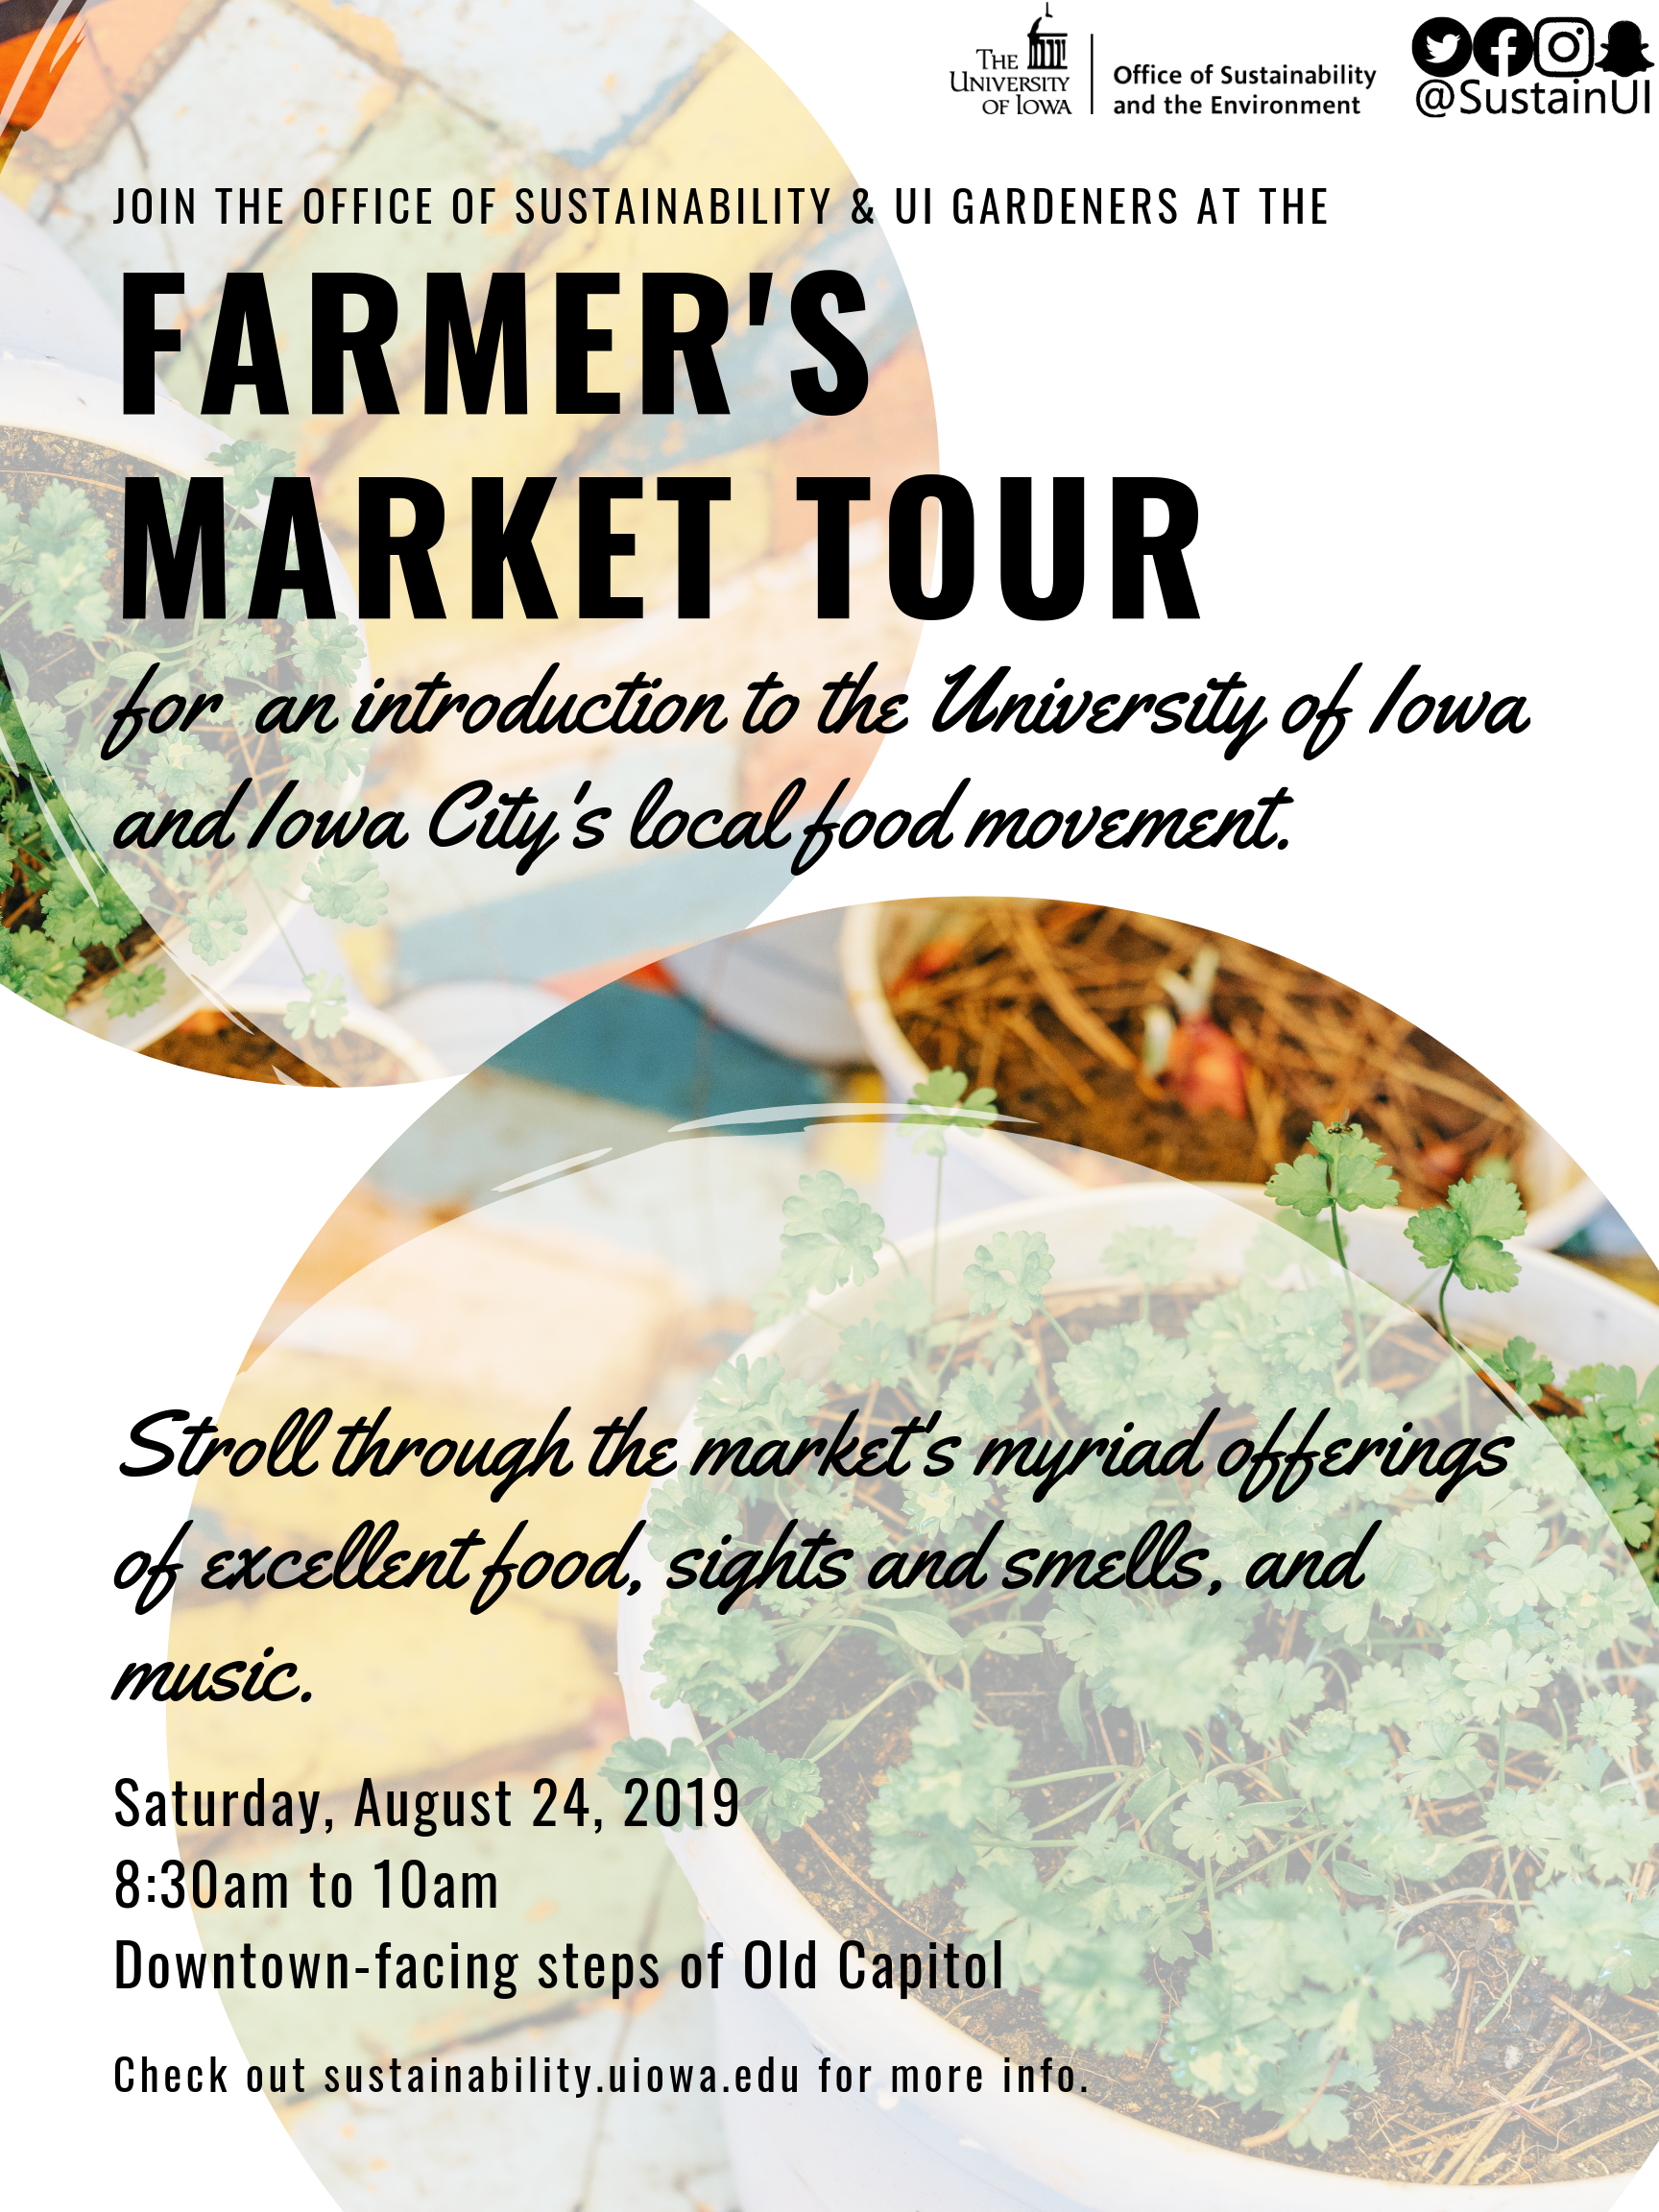 2019 Farmer's market tour office of sustainability